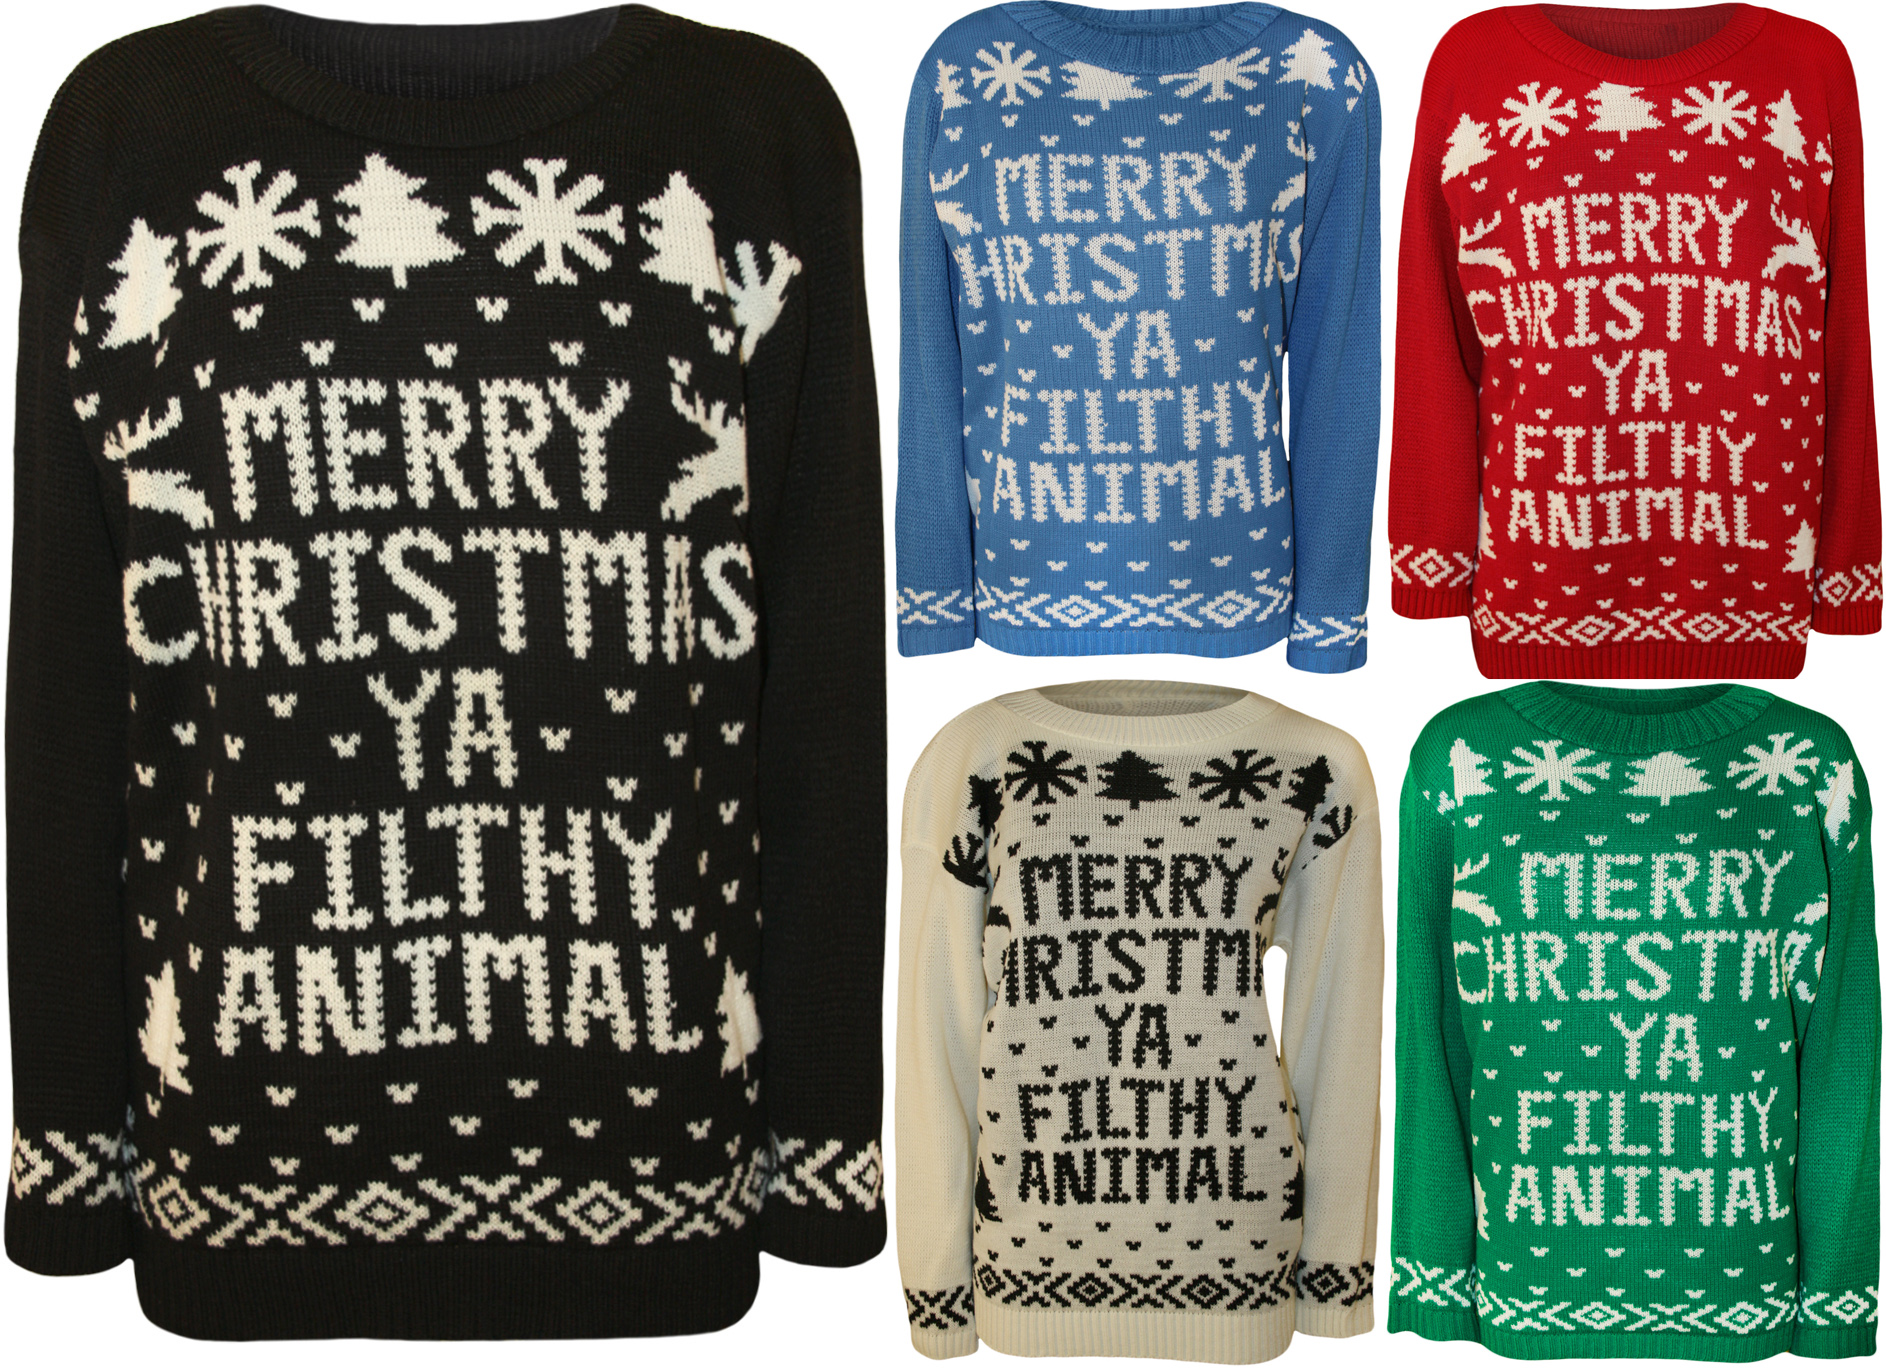 Merry Christmas Ya Filthy Animal Sweater Plus Size 75